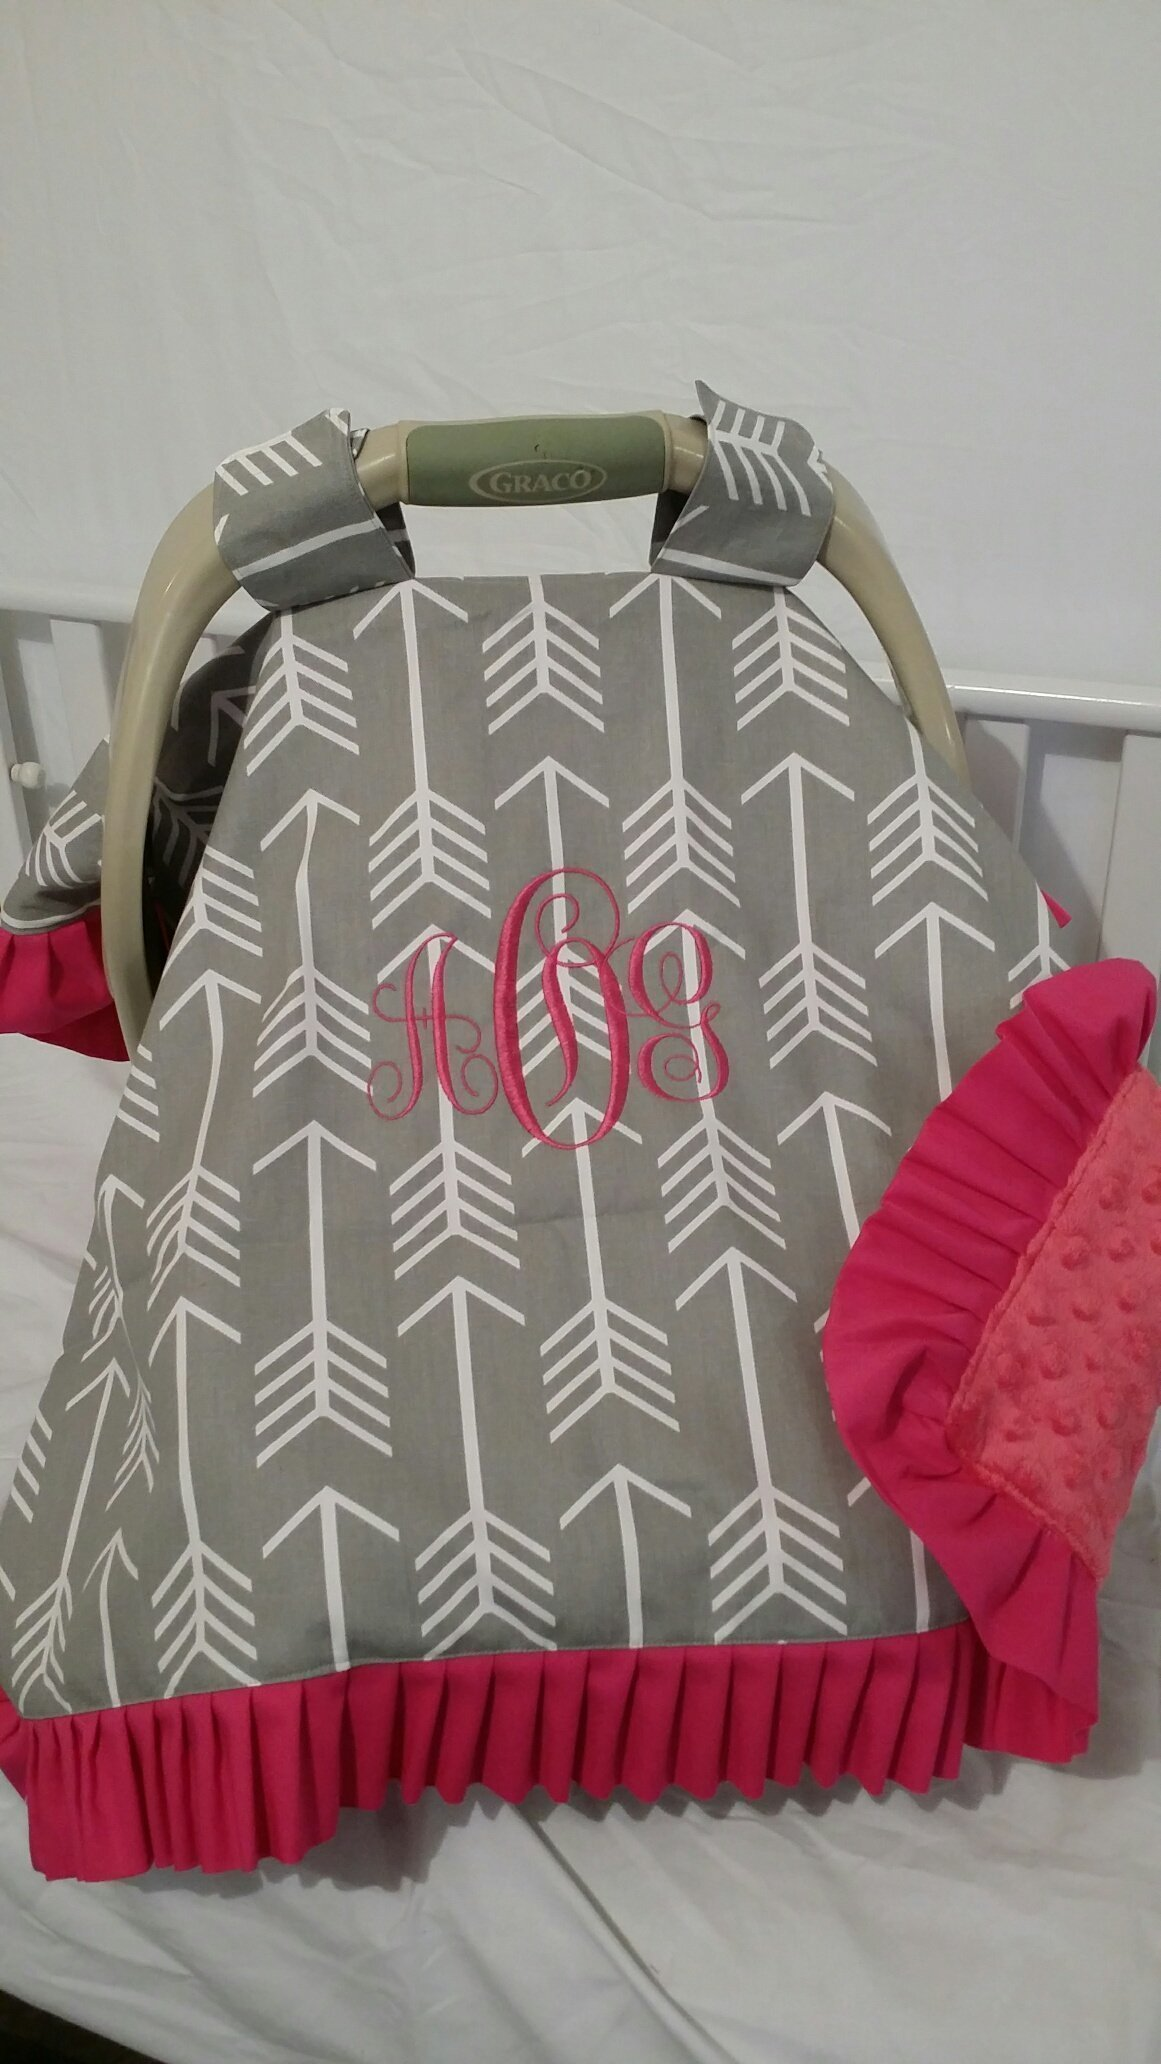 Car seat cover, canopy, Doubles as a blanket, Infant carrier cover, handle straps Embroidered, personalized, monogrammed, Any theme, Protect your baby from weather and sickness by CozyCreations Heather Reynolds